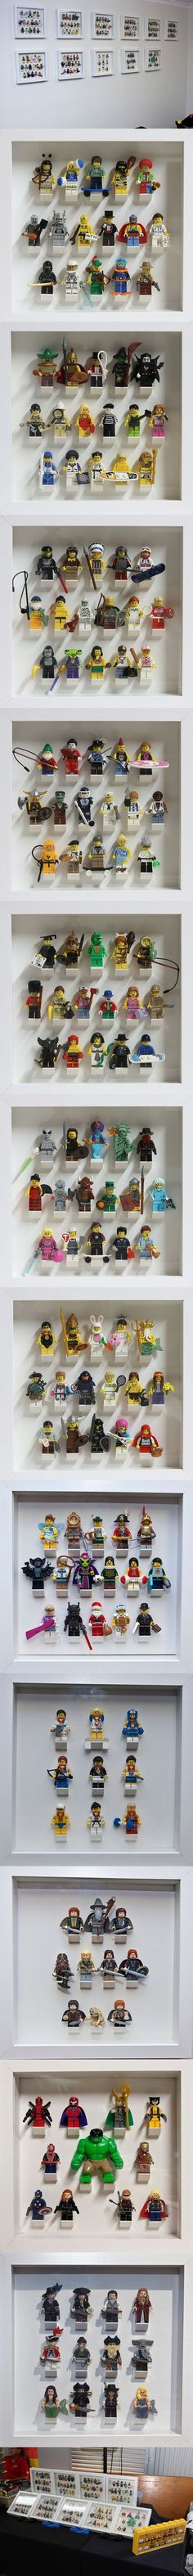 Collectible Minifigures in IKEA Ribba Frames - Trend Lego Box 2020 Legos, Minifigura Lego, Lego Display, Display Cases, Deco Lego, Lego Boards, Lego People, Ribba Frame, Lego Minifigs